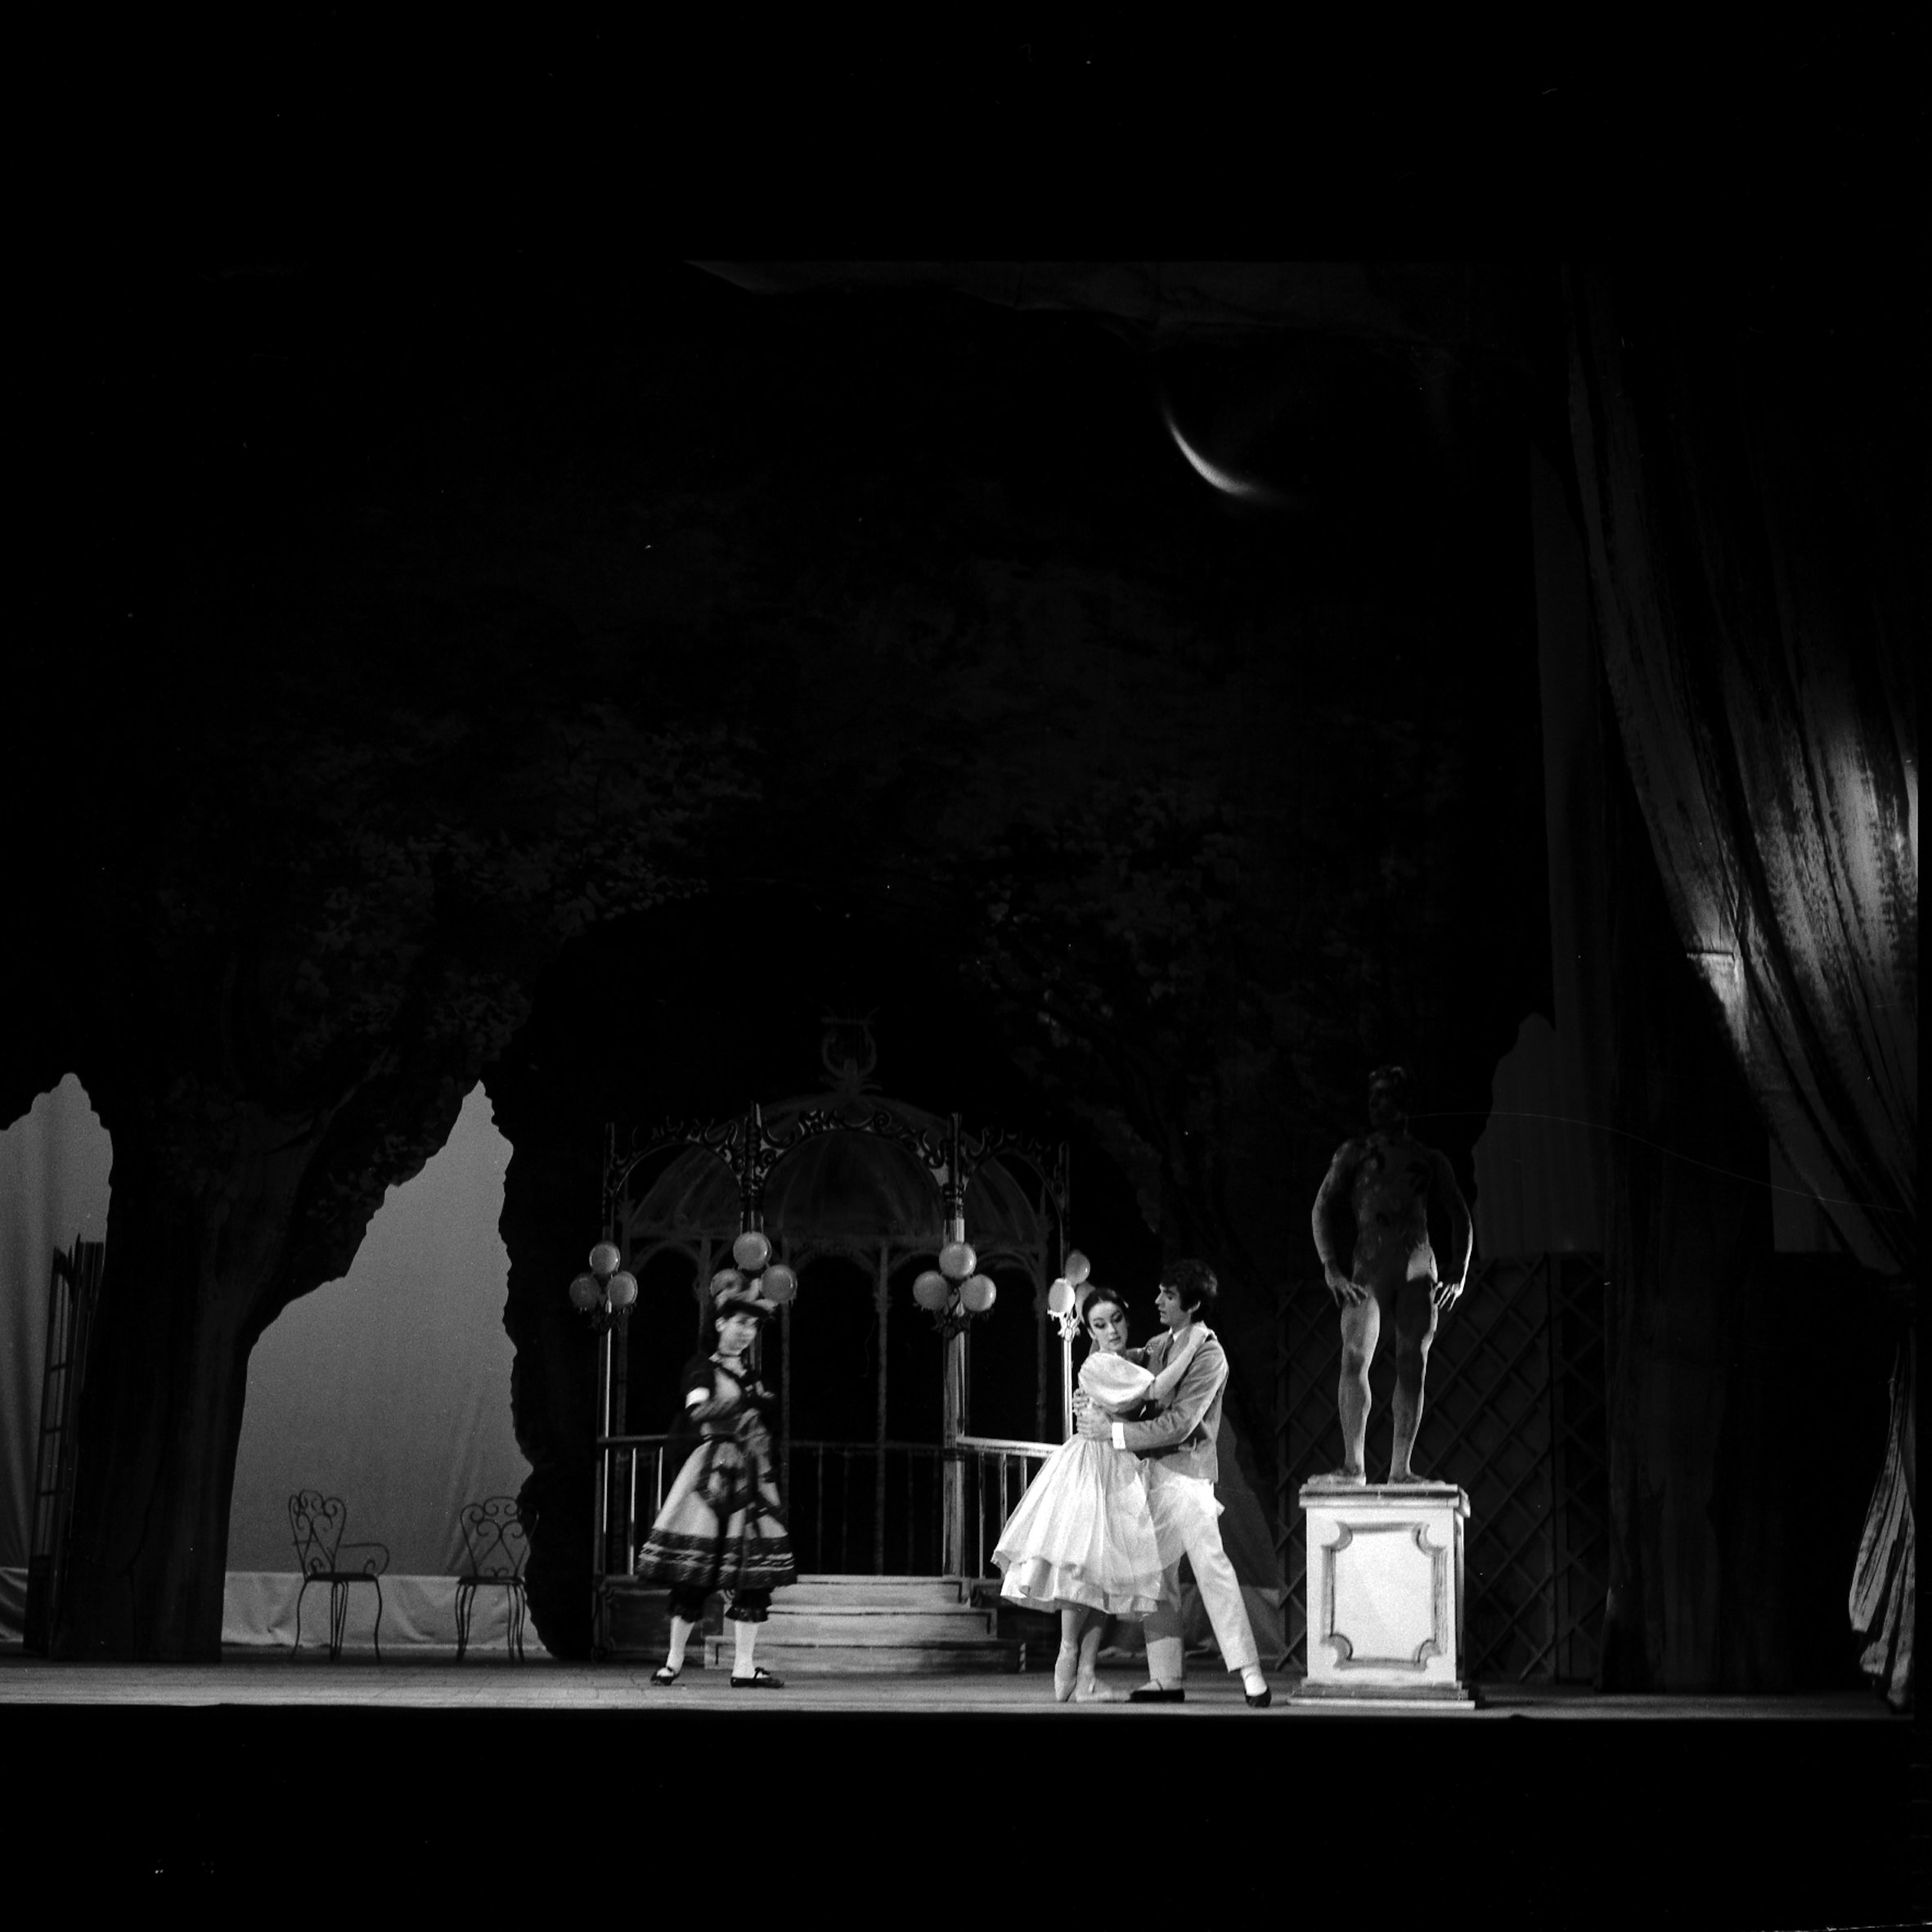 File 20 03 1968 Decor Et Spectacle De Ballet 1968 53fi3810 Jpg